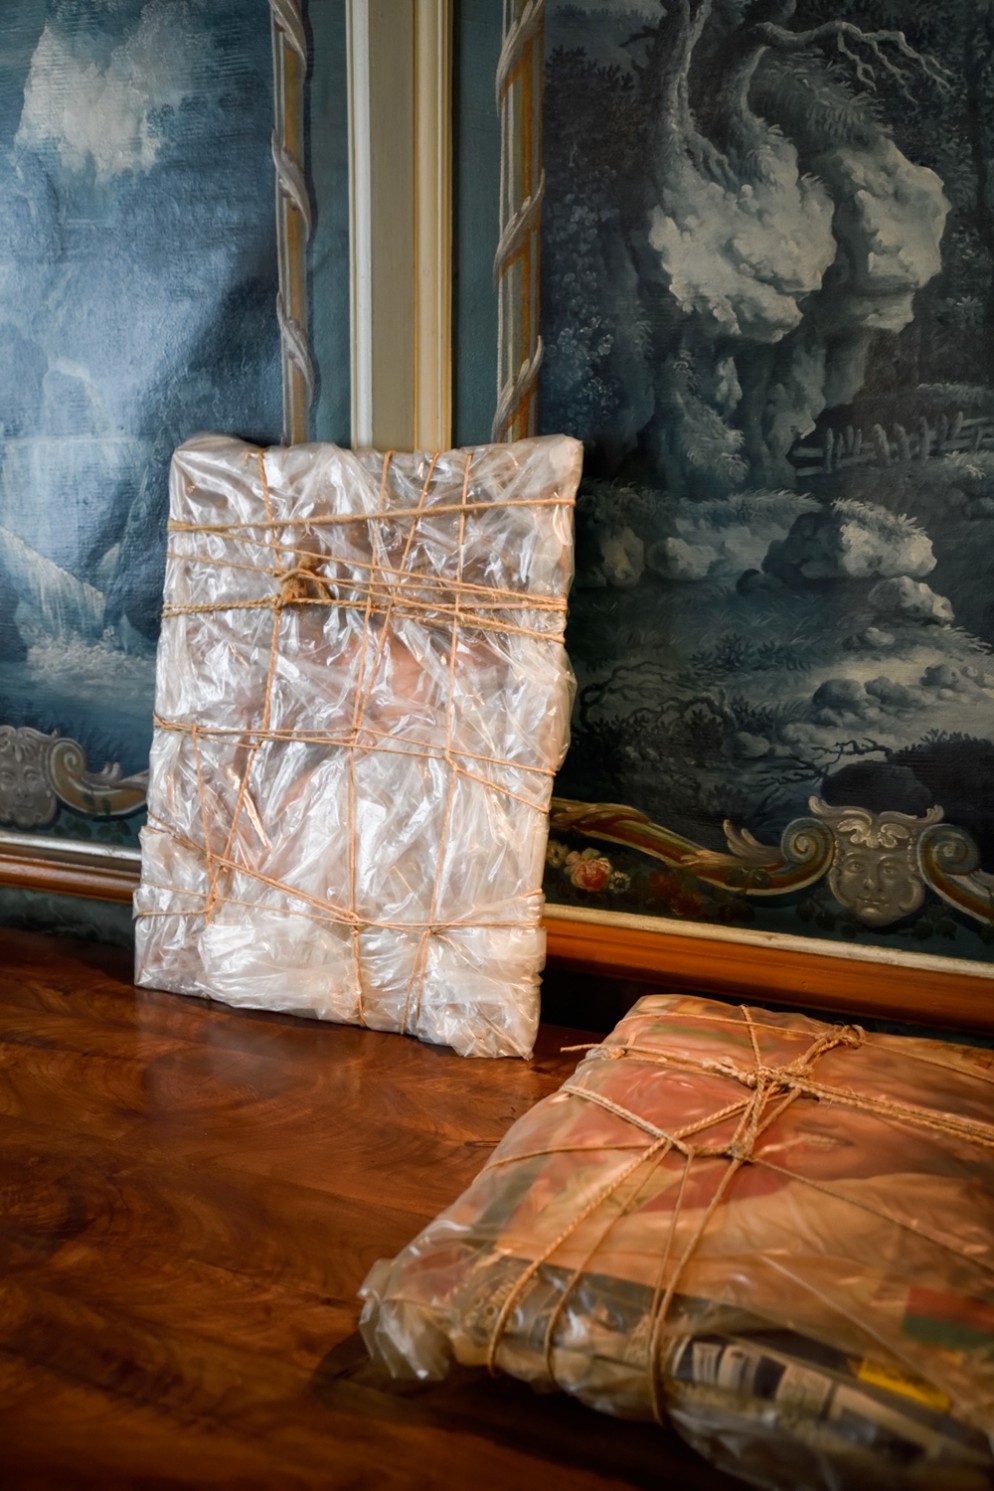 10_PS_NOMAD Summer Edition 2021 St. Moritz_CHRISTO. WRAPPED FURNITURE AND OBJECTS_ 1961-1963, ZUECCA PROJECTS _ ALESSANDRO POSSATI, CHRISTOPHER TAYLOR 3_photo credit J'adore ce que vous faites!